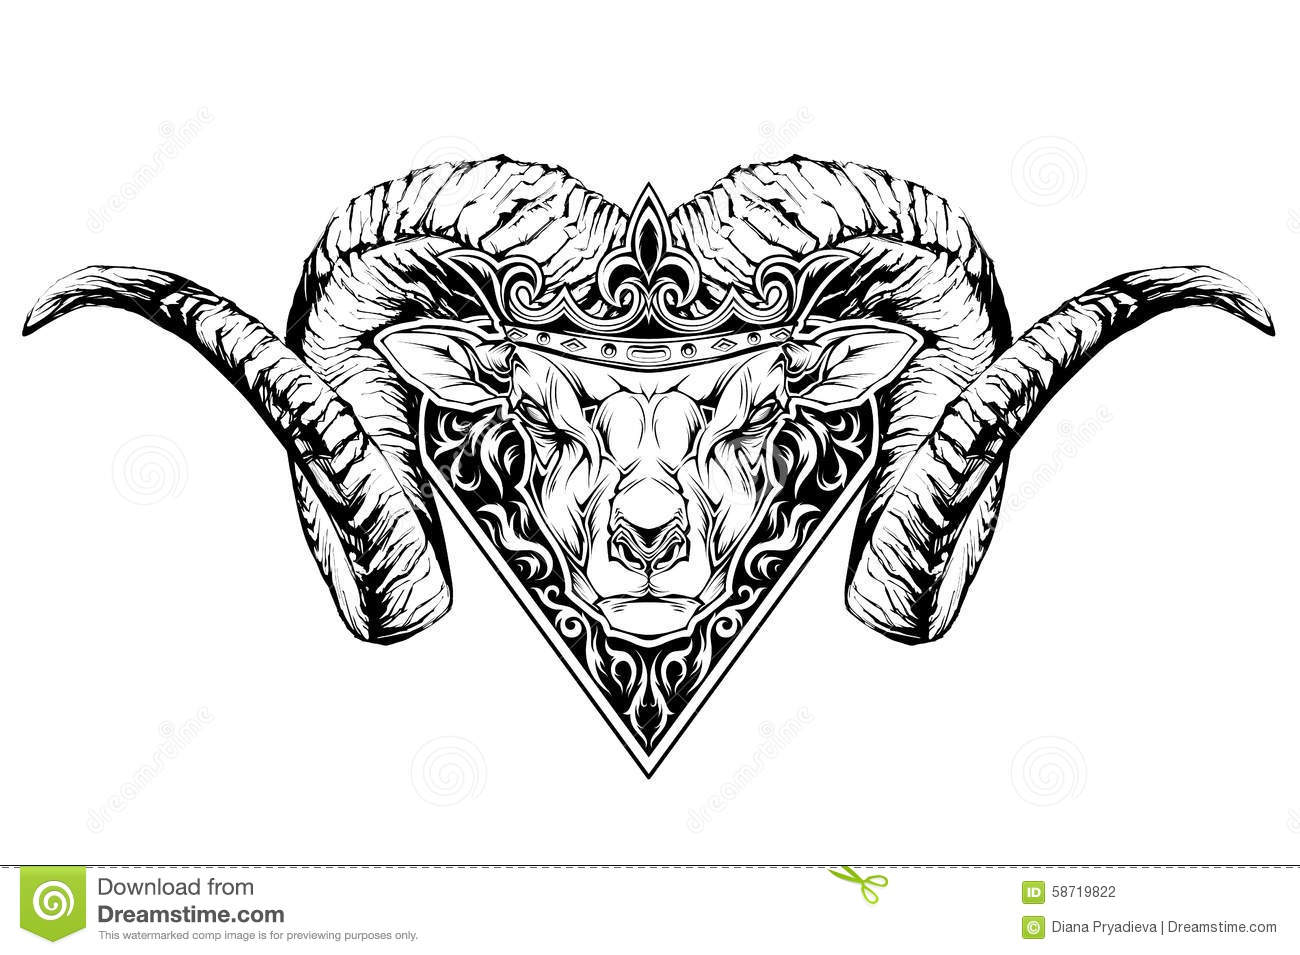 Stock Photo Tribal Horoscope Image21915000 in addition Lizenzfreie Stockbilder Sternzeichen Image31061129 moreover Ram Man Clipart further Truck Clipart Black And White 33358 together with Galaxy Tab A 9 7 P555. on black ram